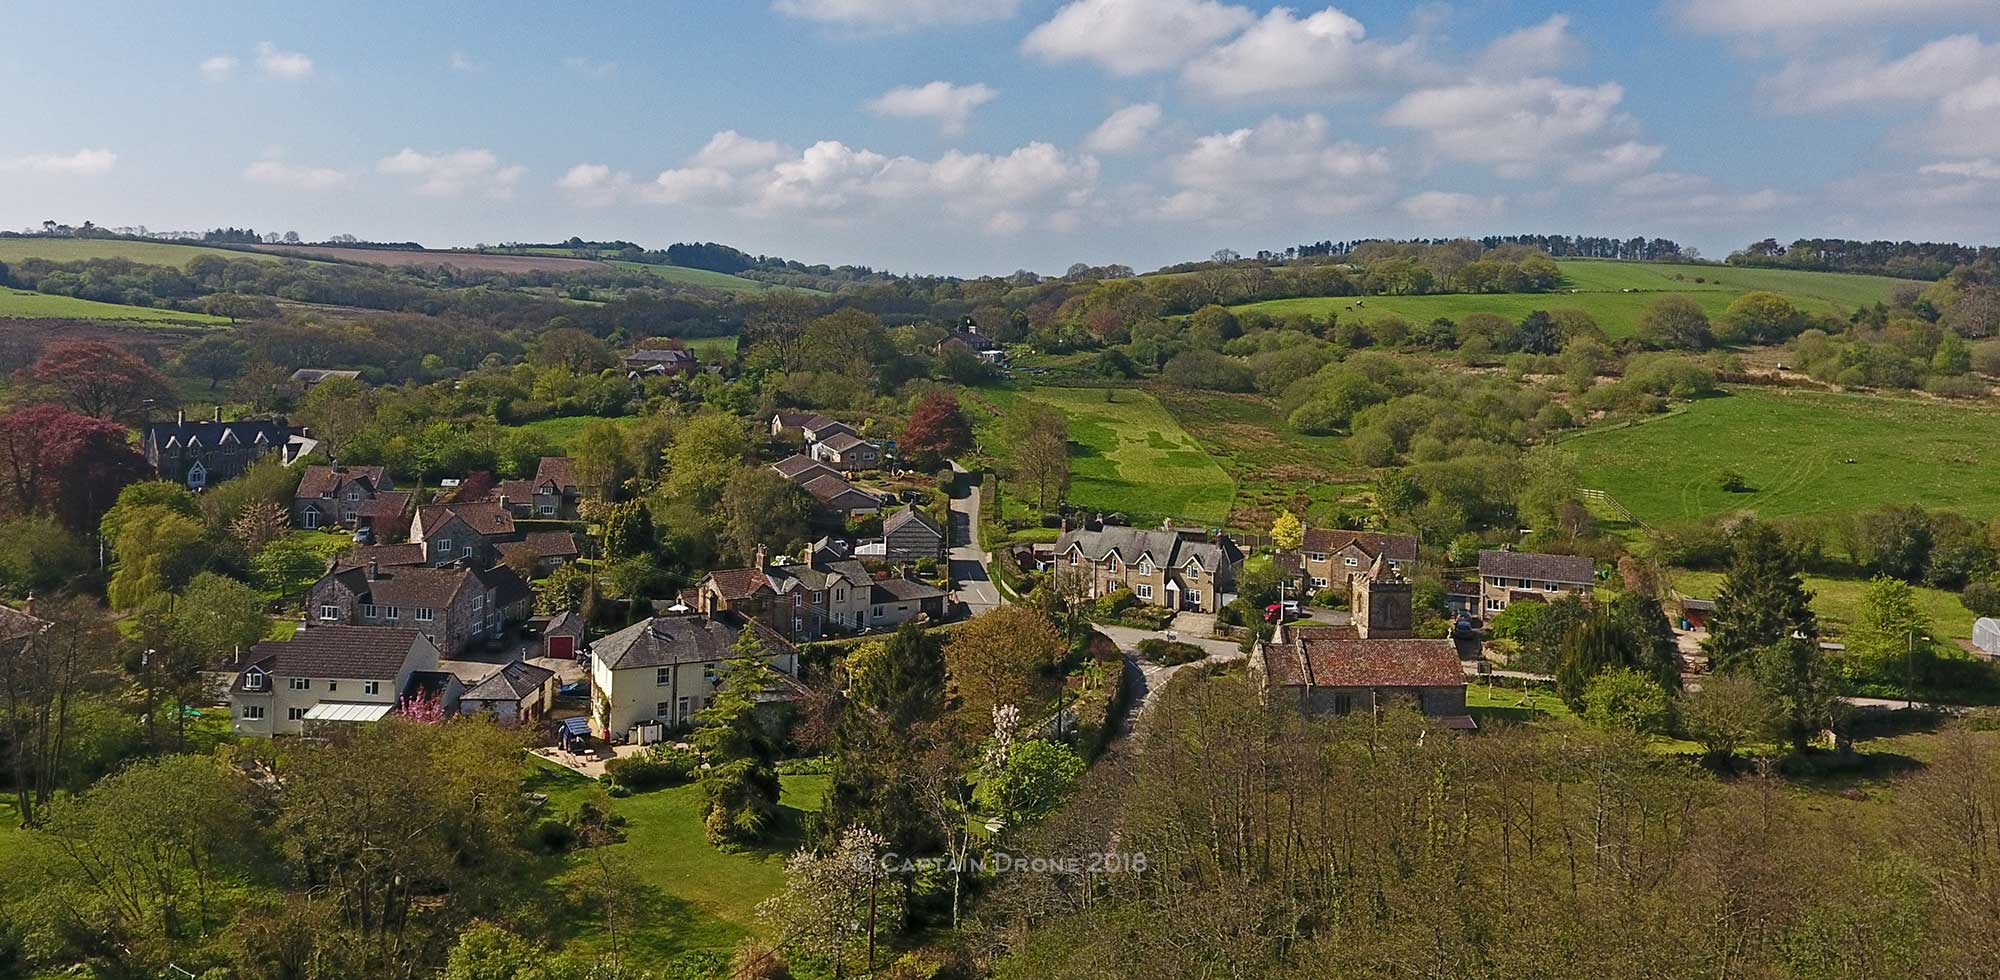 Hooke Dorset village aerial photography by Captain Drone